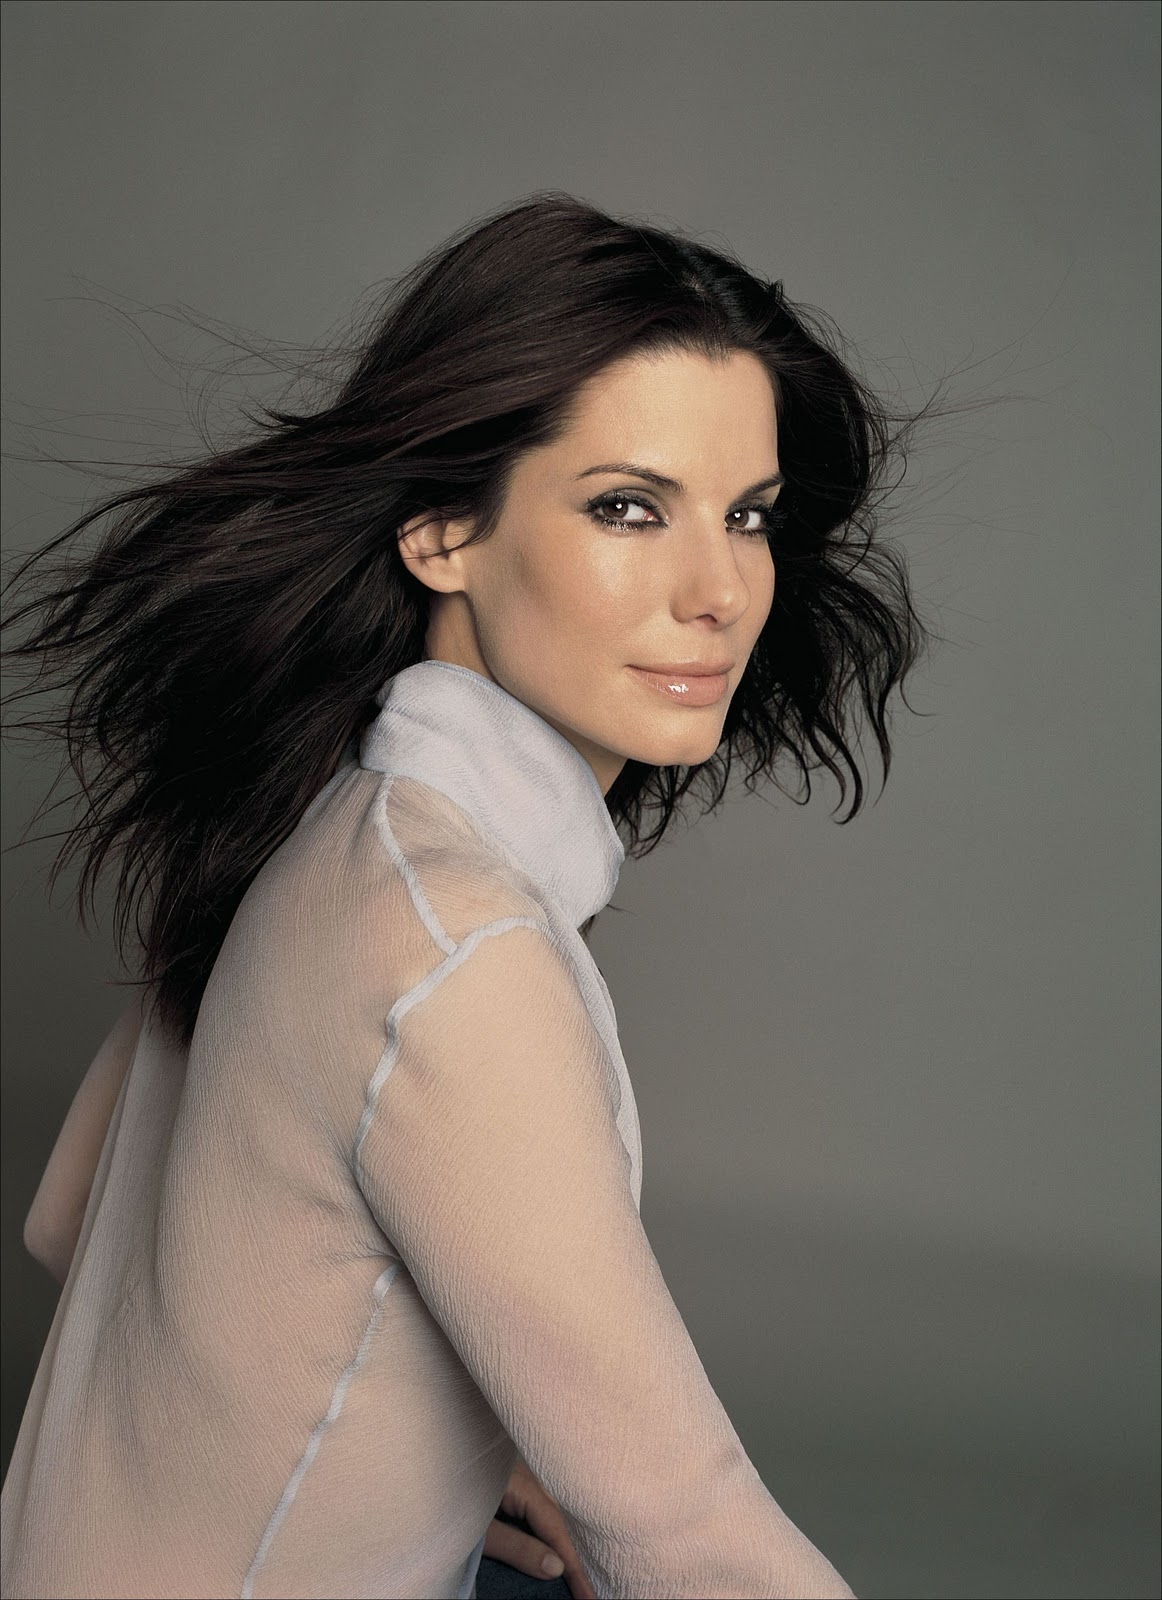 Famous Home Design Quotes Indian Jokes Sandra Bullock Sexy Wallpapers